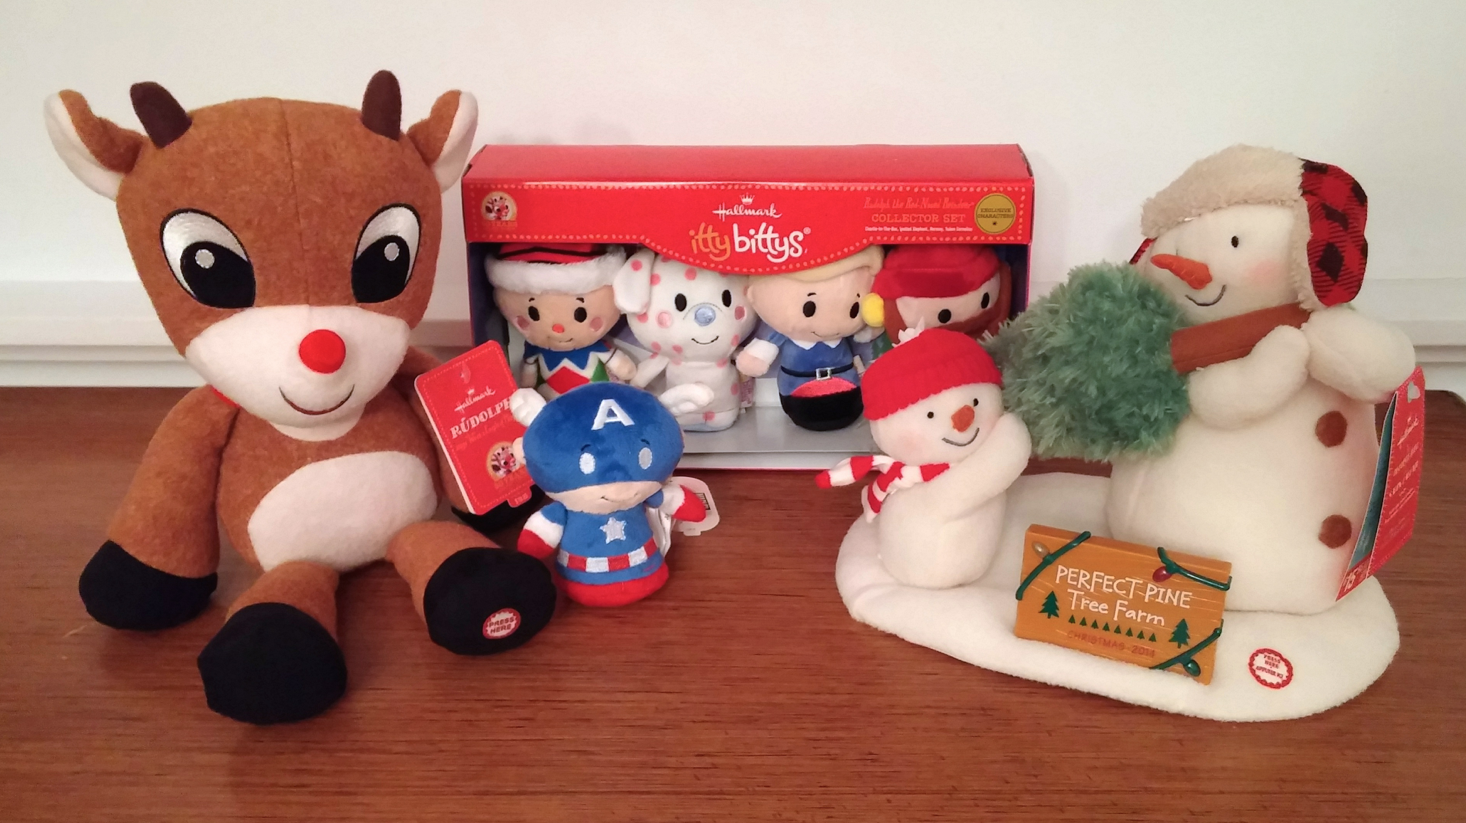 Hallmark Holiday Gifting - Rudolph 50th Anniversary itty bittys Collector Set